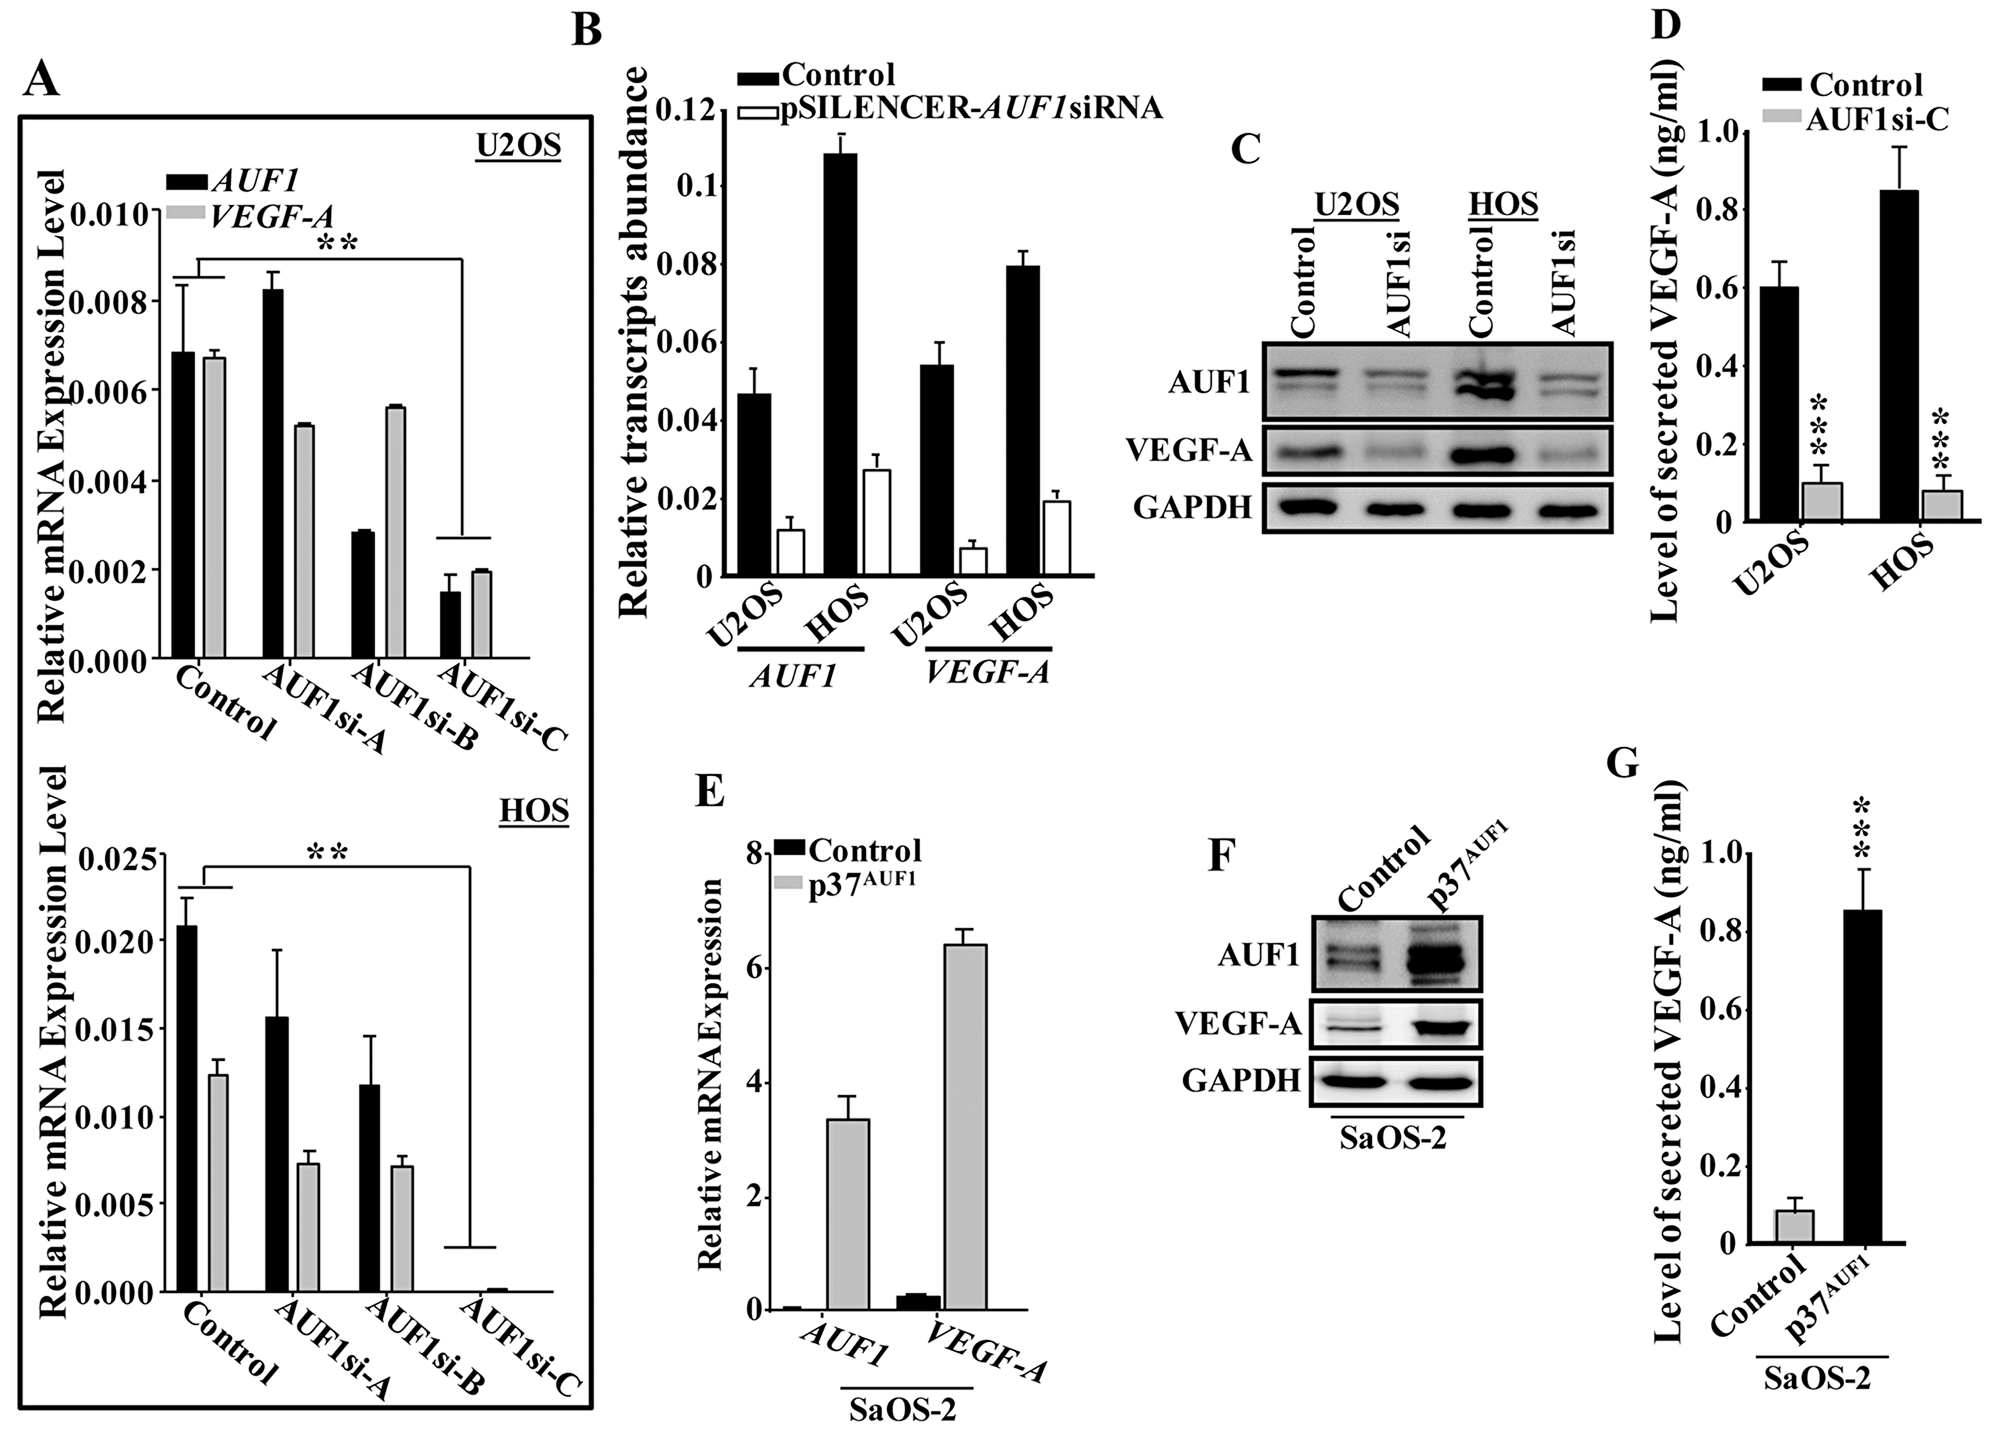 AUF1 positively controls the expression of VEGF-A.